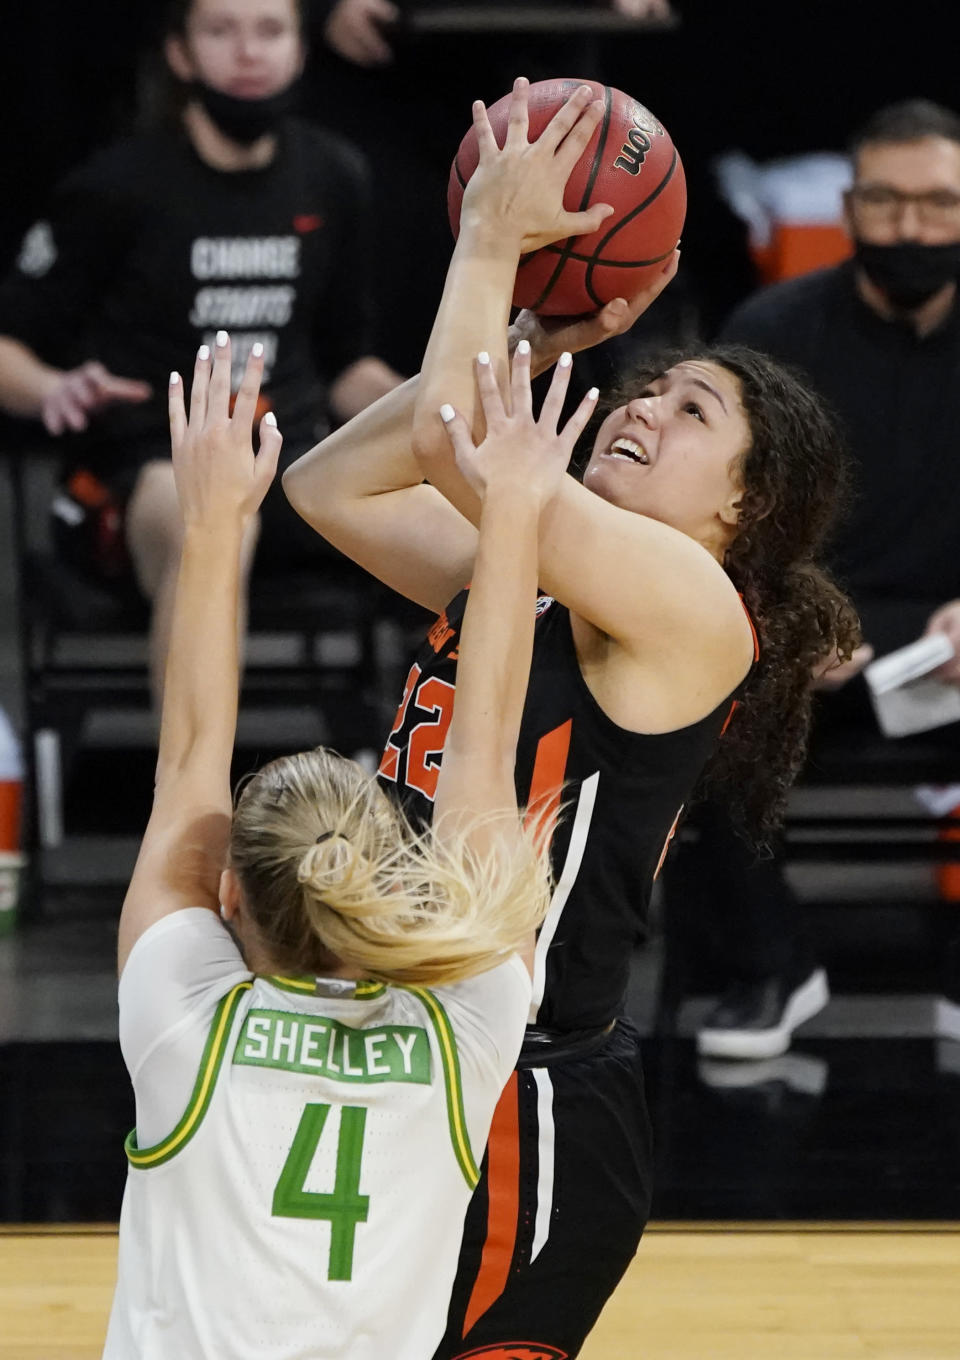 FILE - Oregon State's Talia Von Oelhoffen (22) shoots over Oregon's Jaz Shelley (4) during the second half of an NCAA college basketball game in the second round of the Pac-12 women's tournament in Las Vegas, in this Thursday, March 4, 2021, file photo. Players like Oregon State's Talia Von Oelhoffen are not only gaining a head start and valuable experience in their college basketball careers as early enrollees out of high school, they have been counted upon to help women's teams across the country keep their seasons going when players are held out for COVID-19 protocols. Now, some will make their March Madness debuts on the stage in the NCAA Tournament. (AP Photo/John Locher, File)